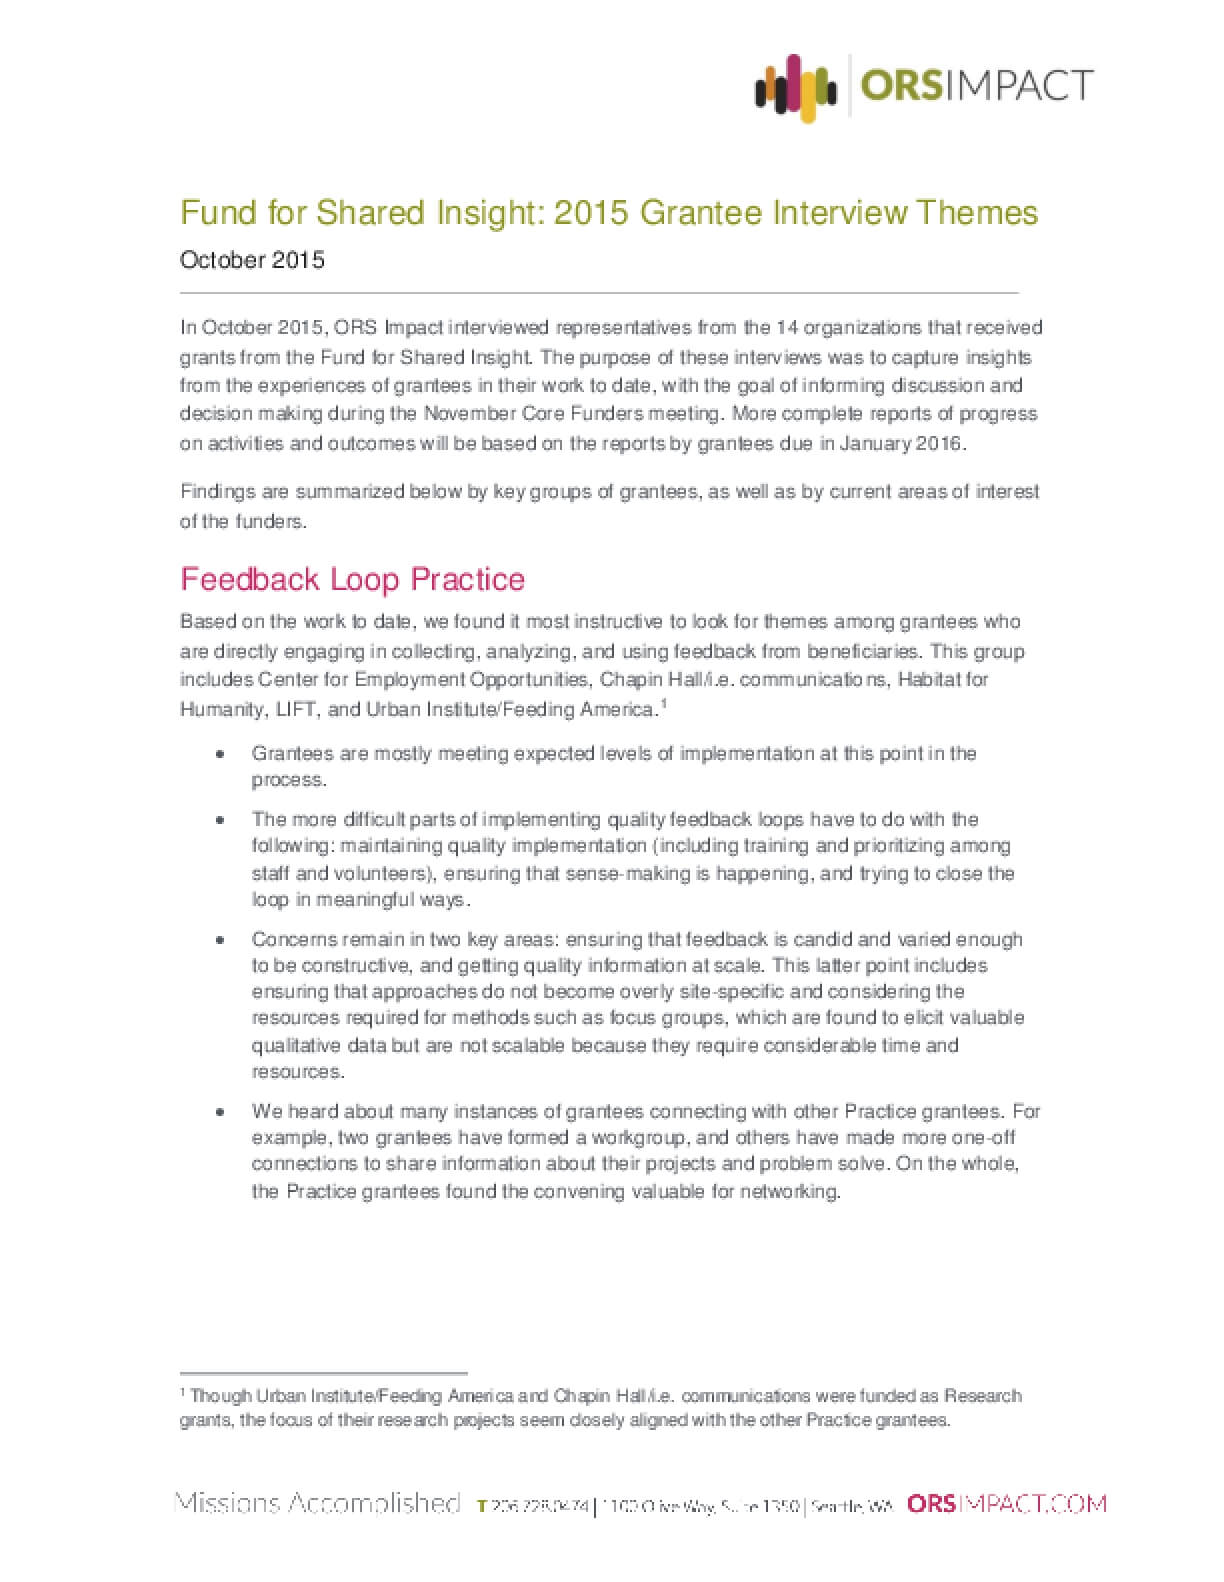 Fund for Shared Insight: 2015 Grantee Interview Themes